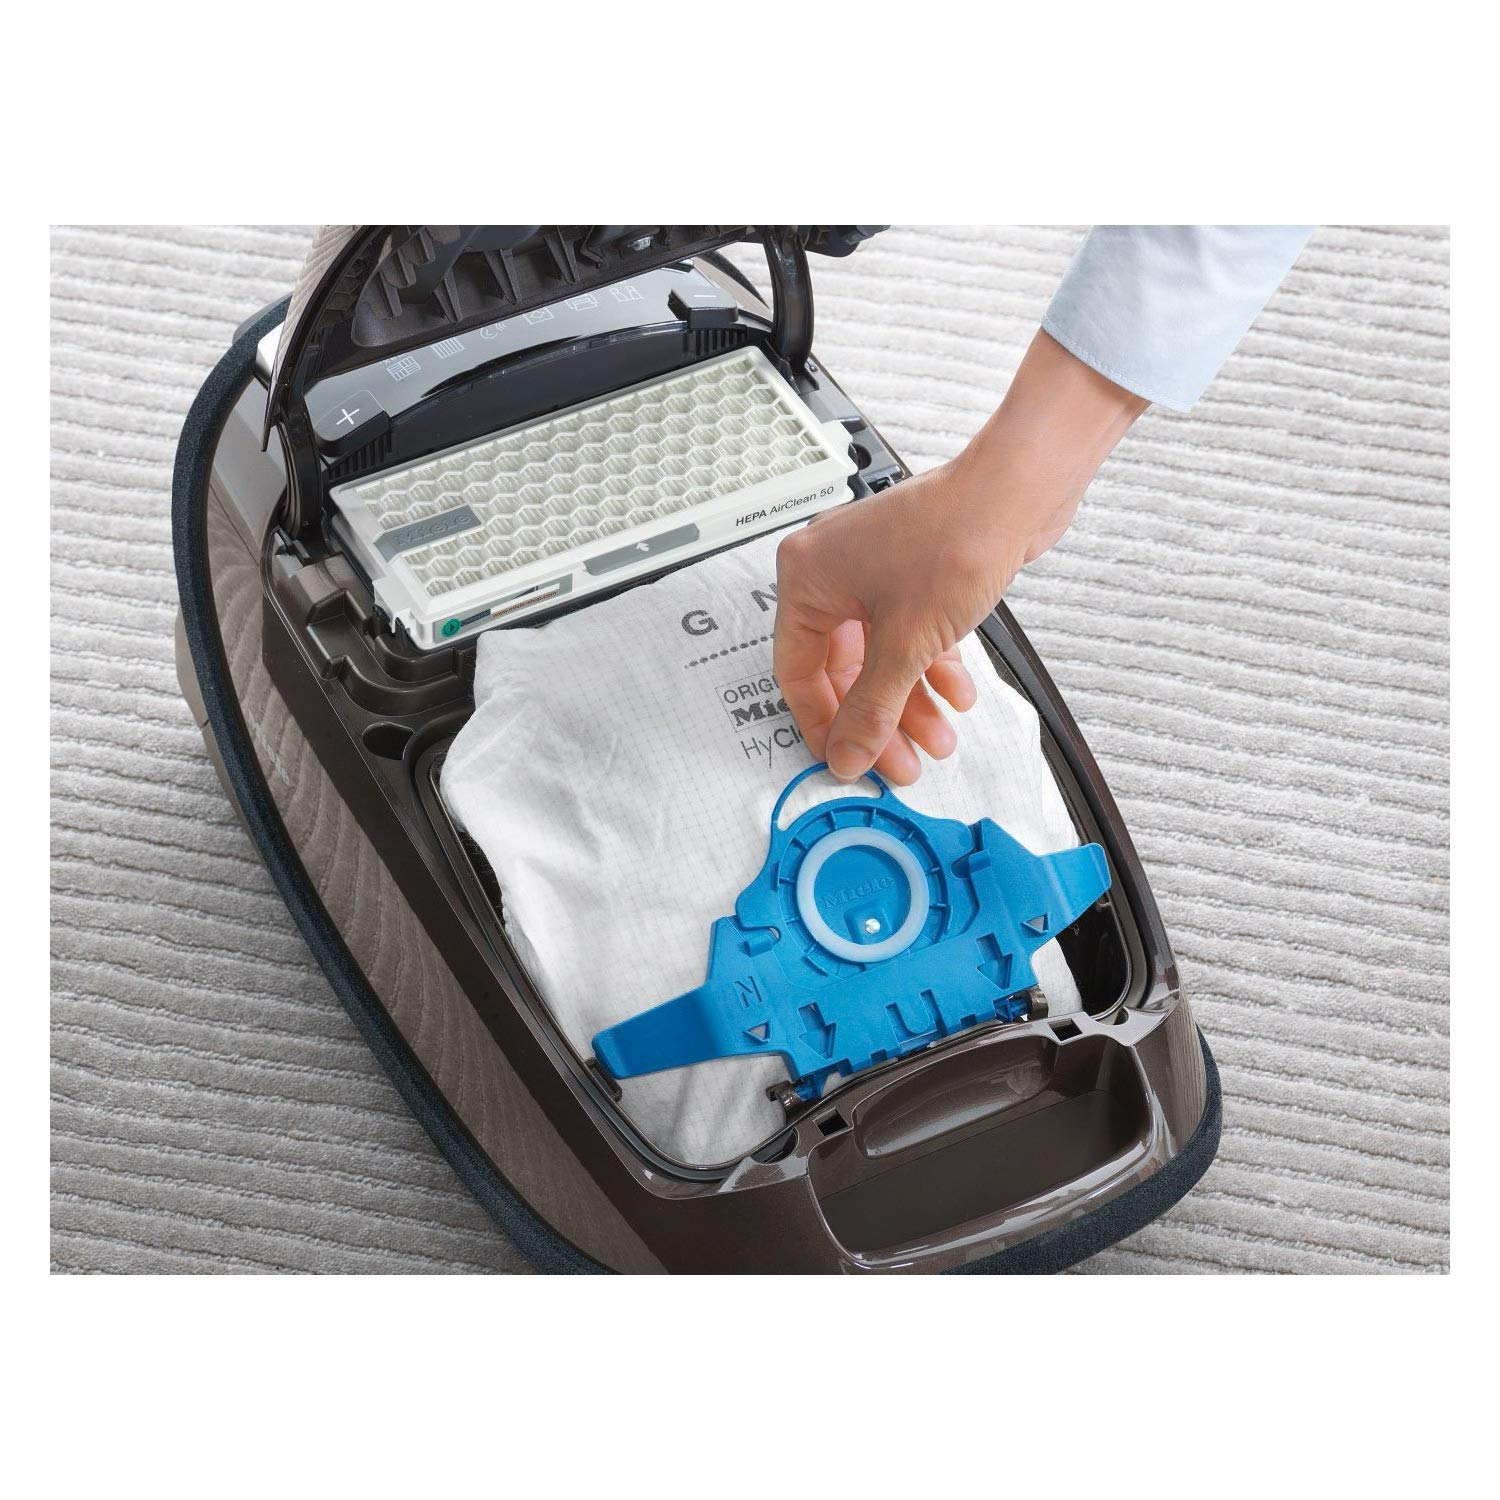 Complete C3 Total Solution Bagged Vacuum Cleaner